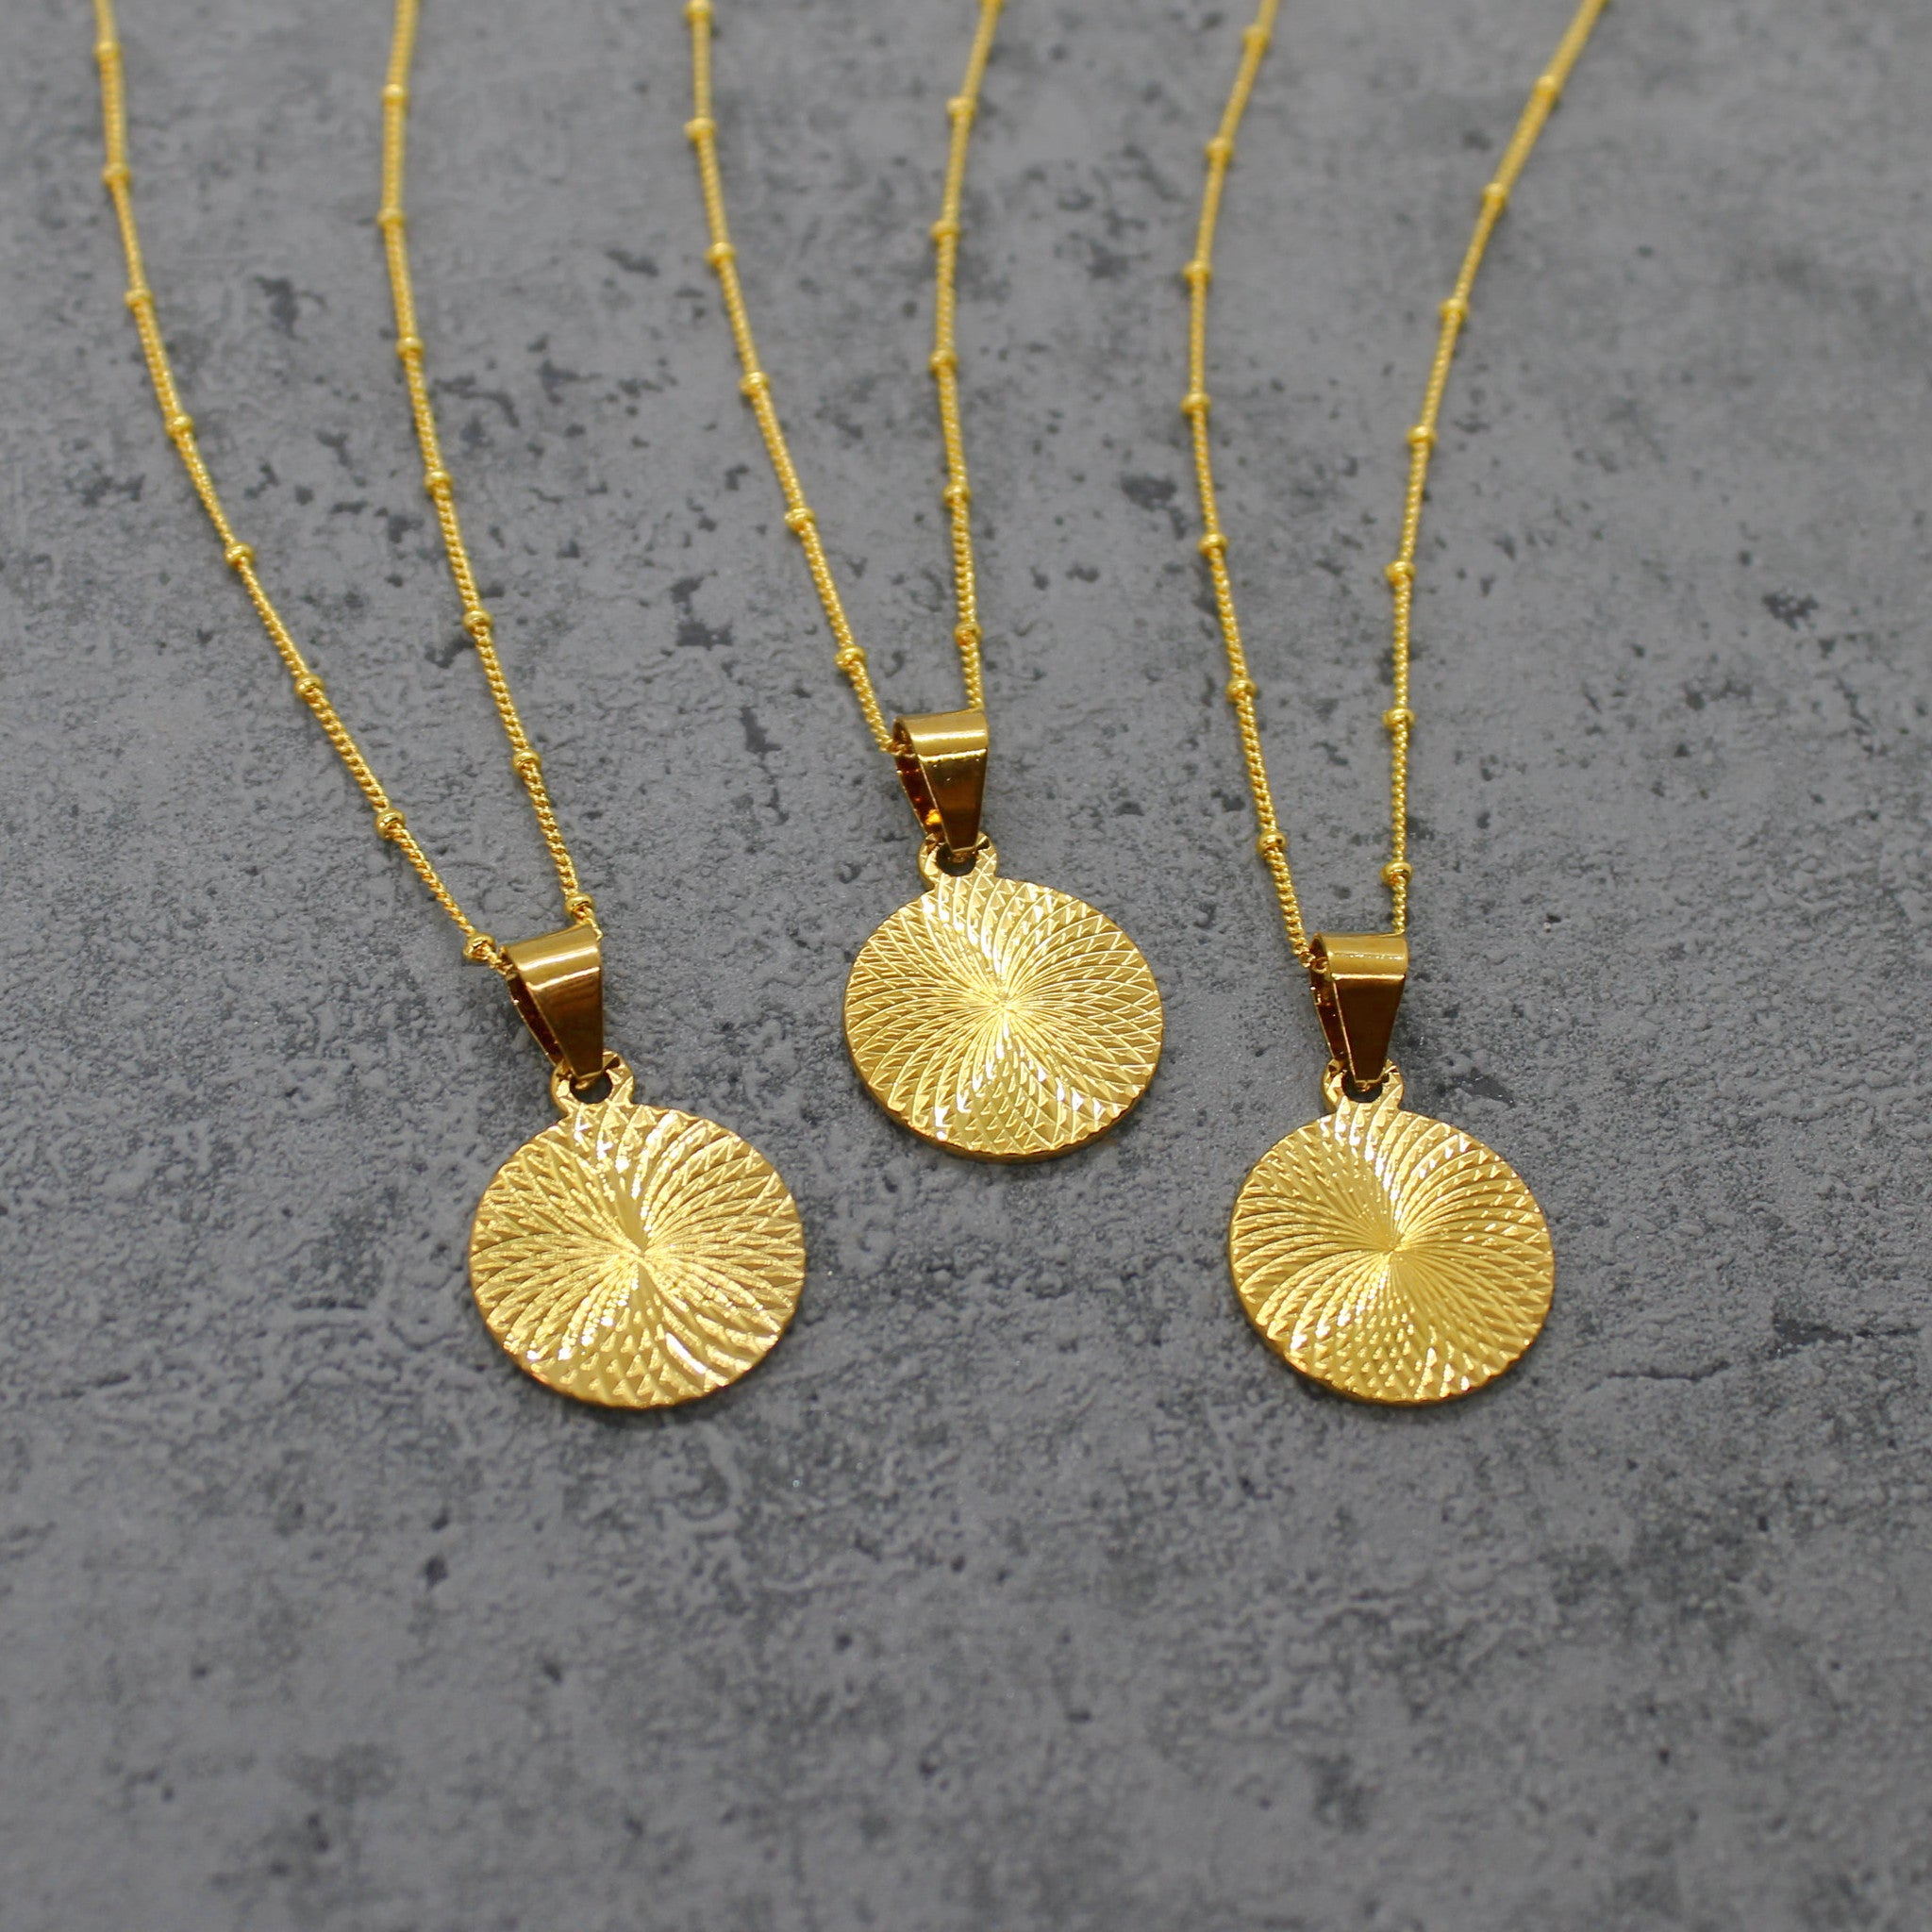 Gold filled circle pendant necklace - Mara studio